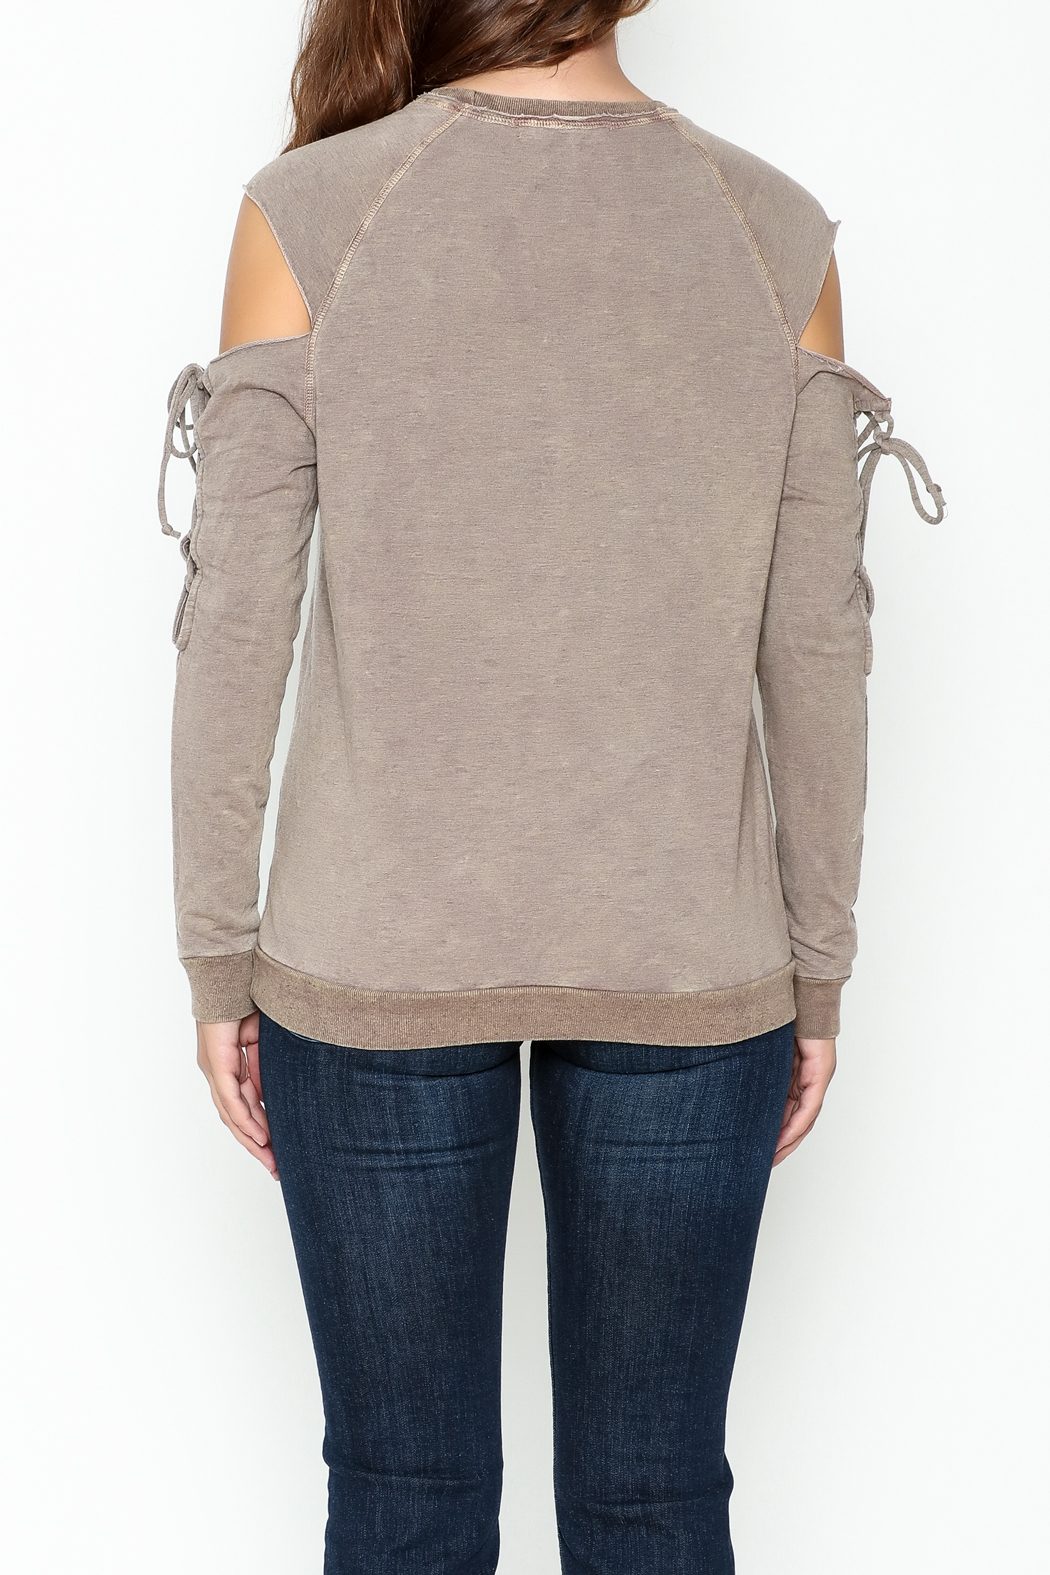 Project Social T Attitude Sweatshirt - Back Cropped Image